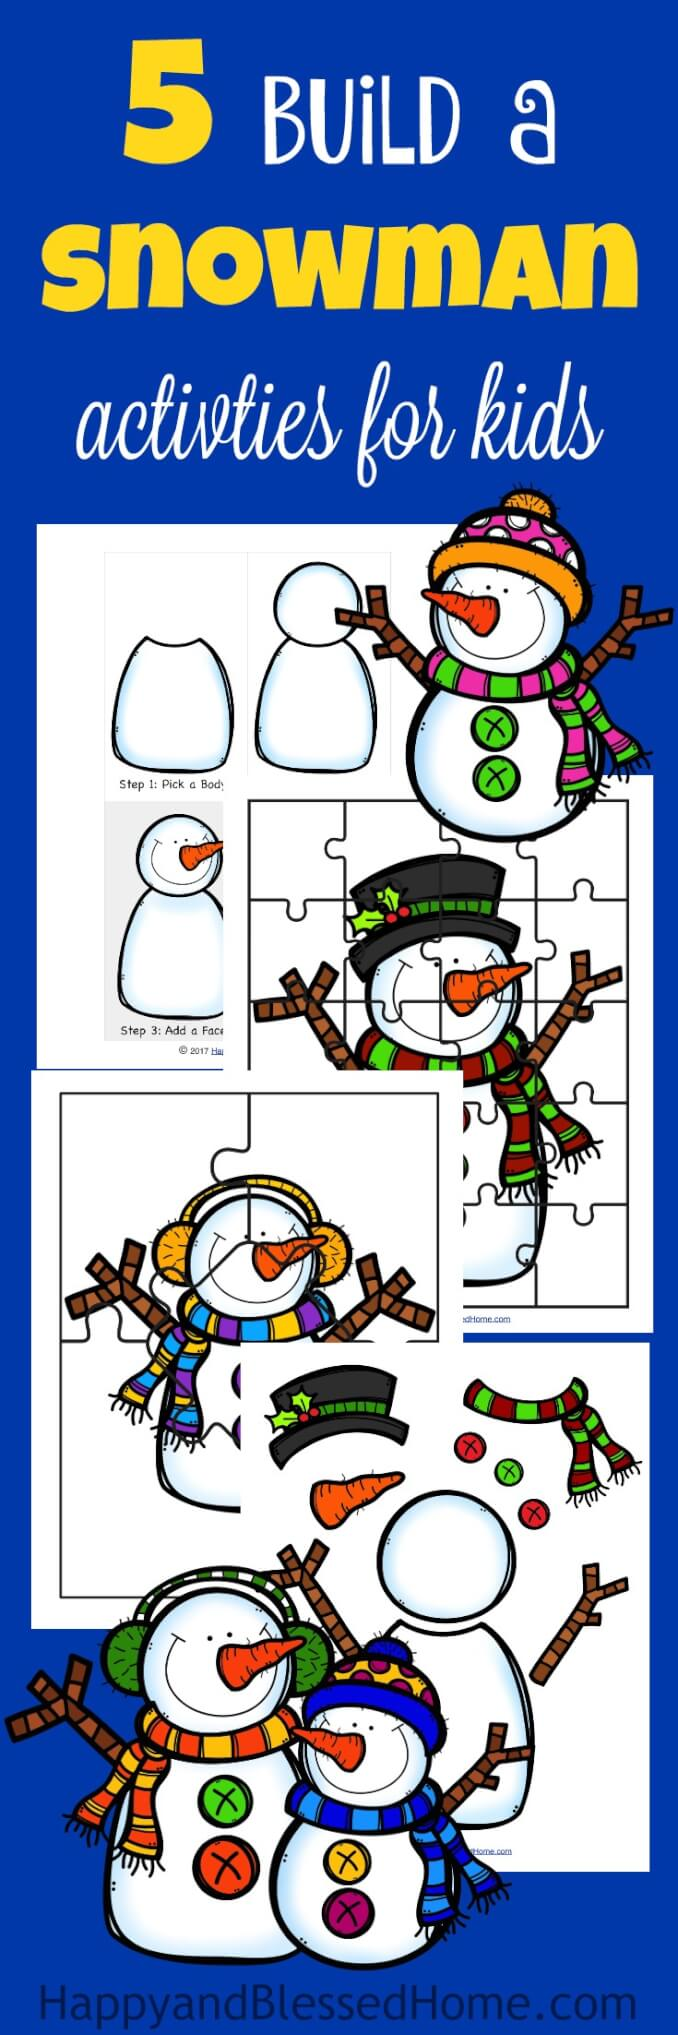 FREE Build a Snowman Activities from HappyandBlessedHome.com